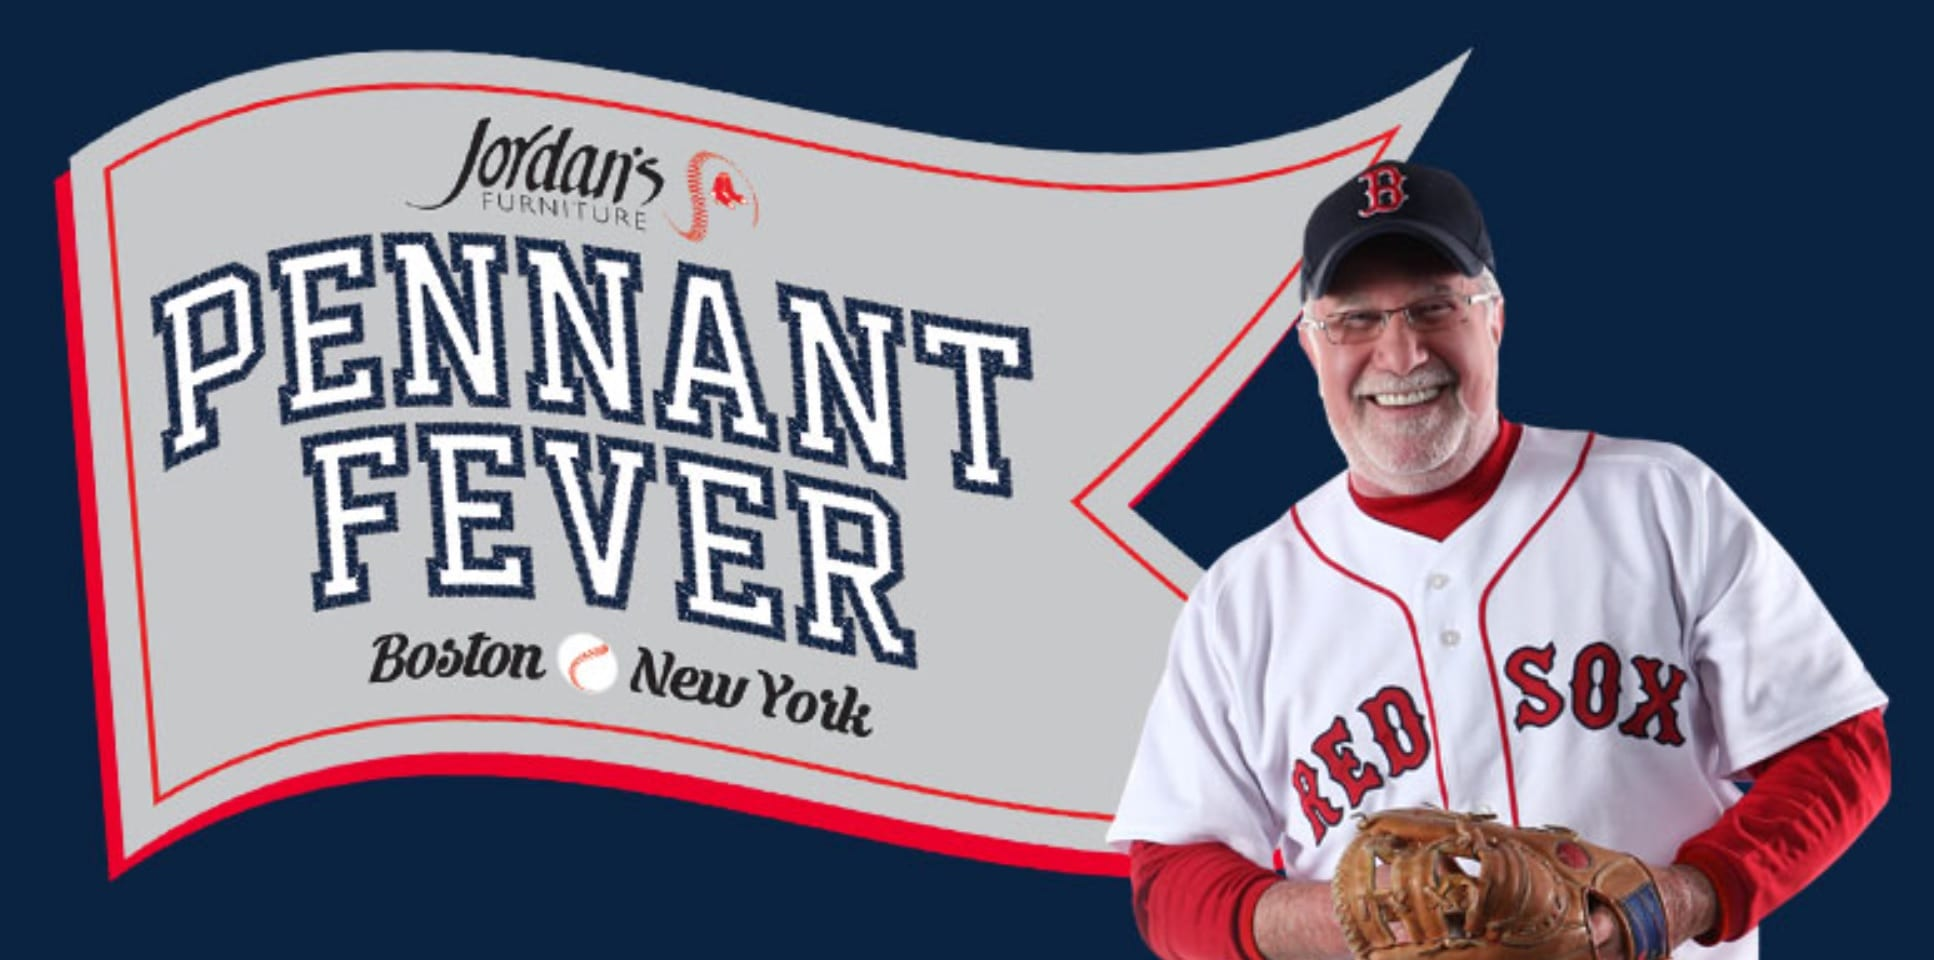 Jordan s Furniture Red Sox 2016 Promotion